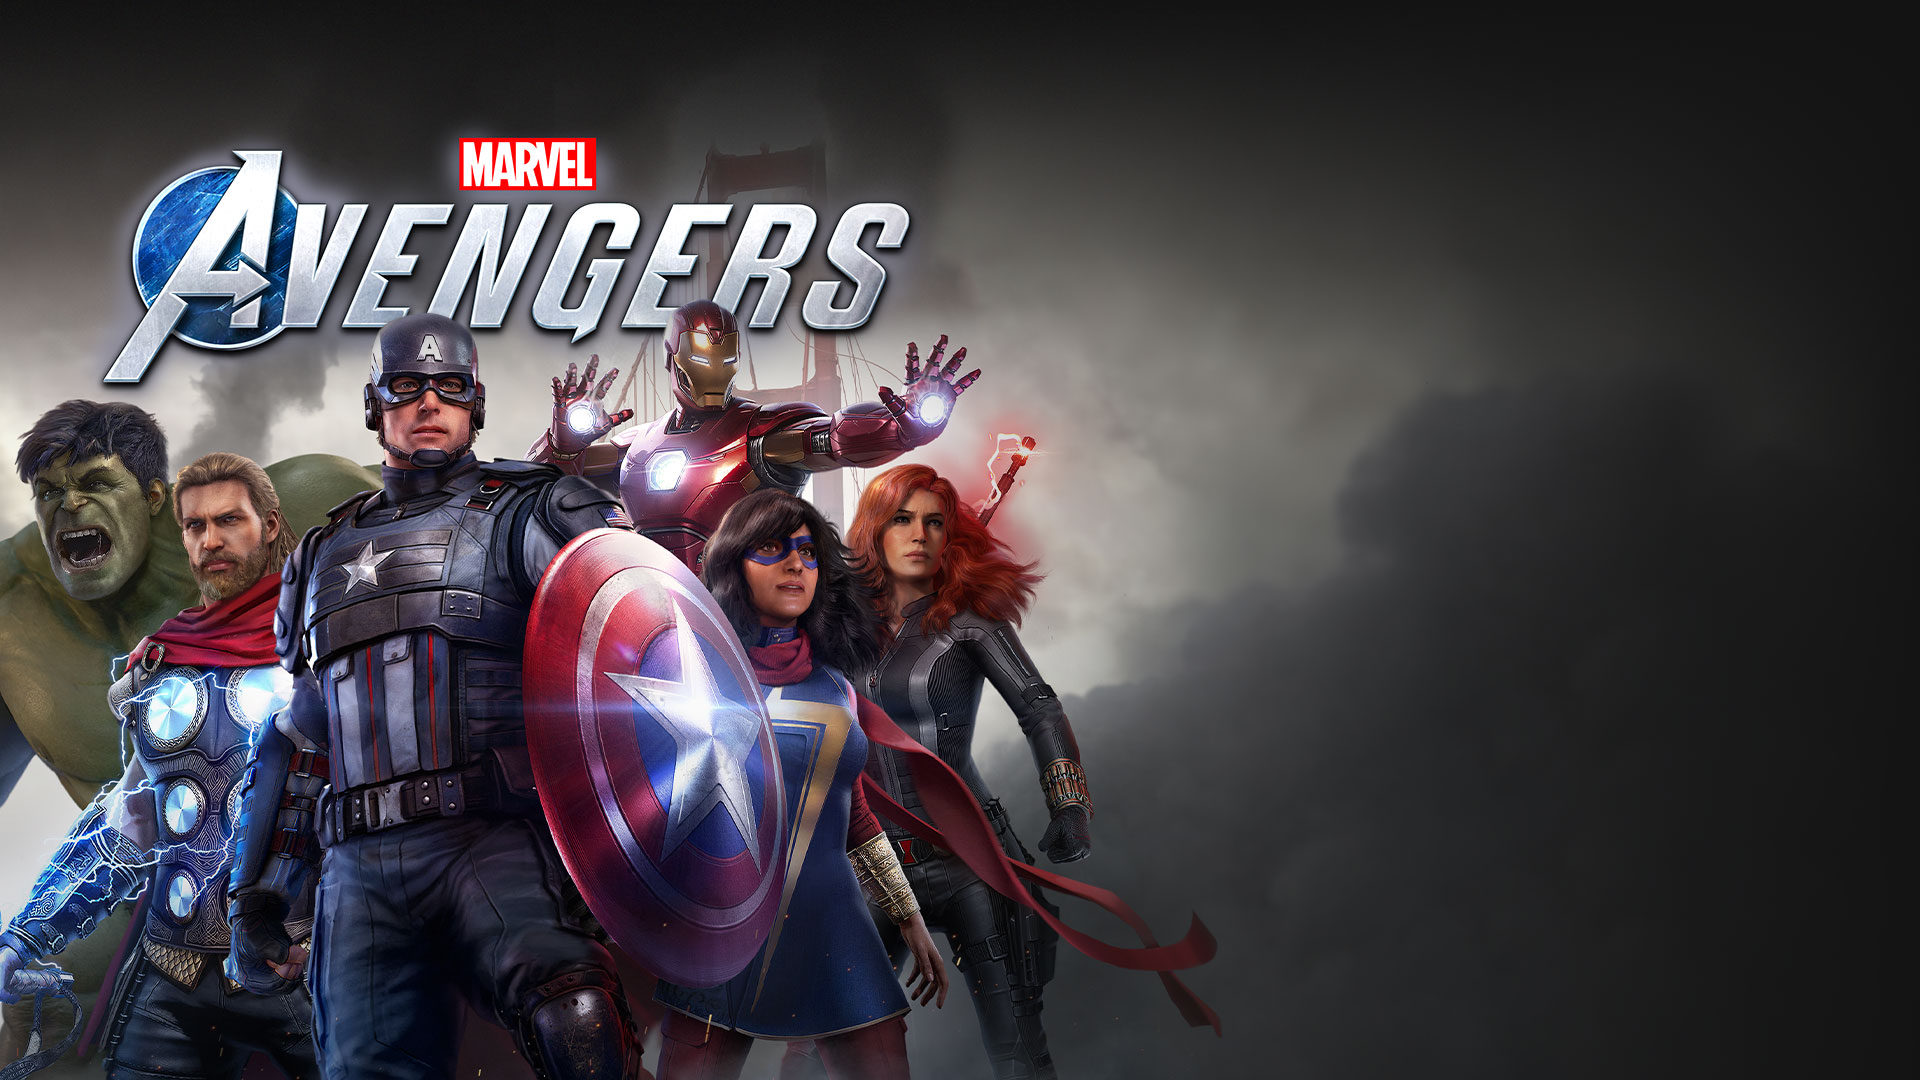 Marvel Avengers logo, Hulk, Thor, Captain America, Ms. Marvel, Iron man, and Black Widow posing in front of the Golden Gate Bridge during a storm